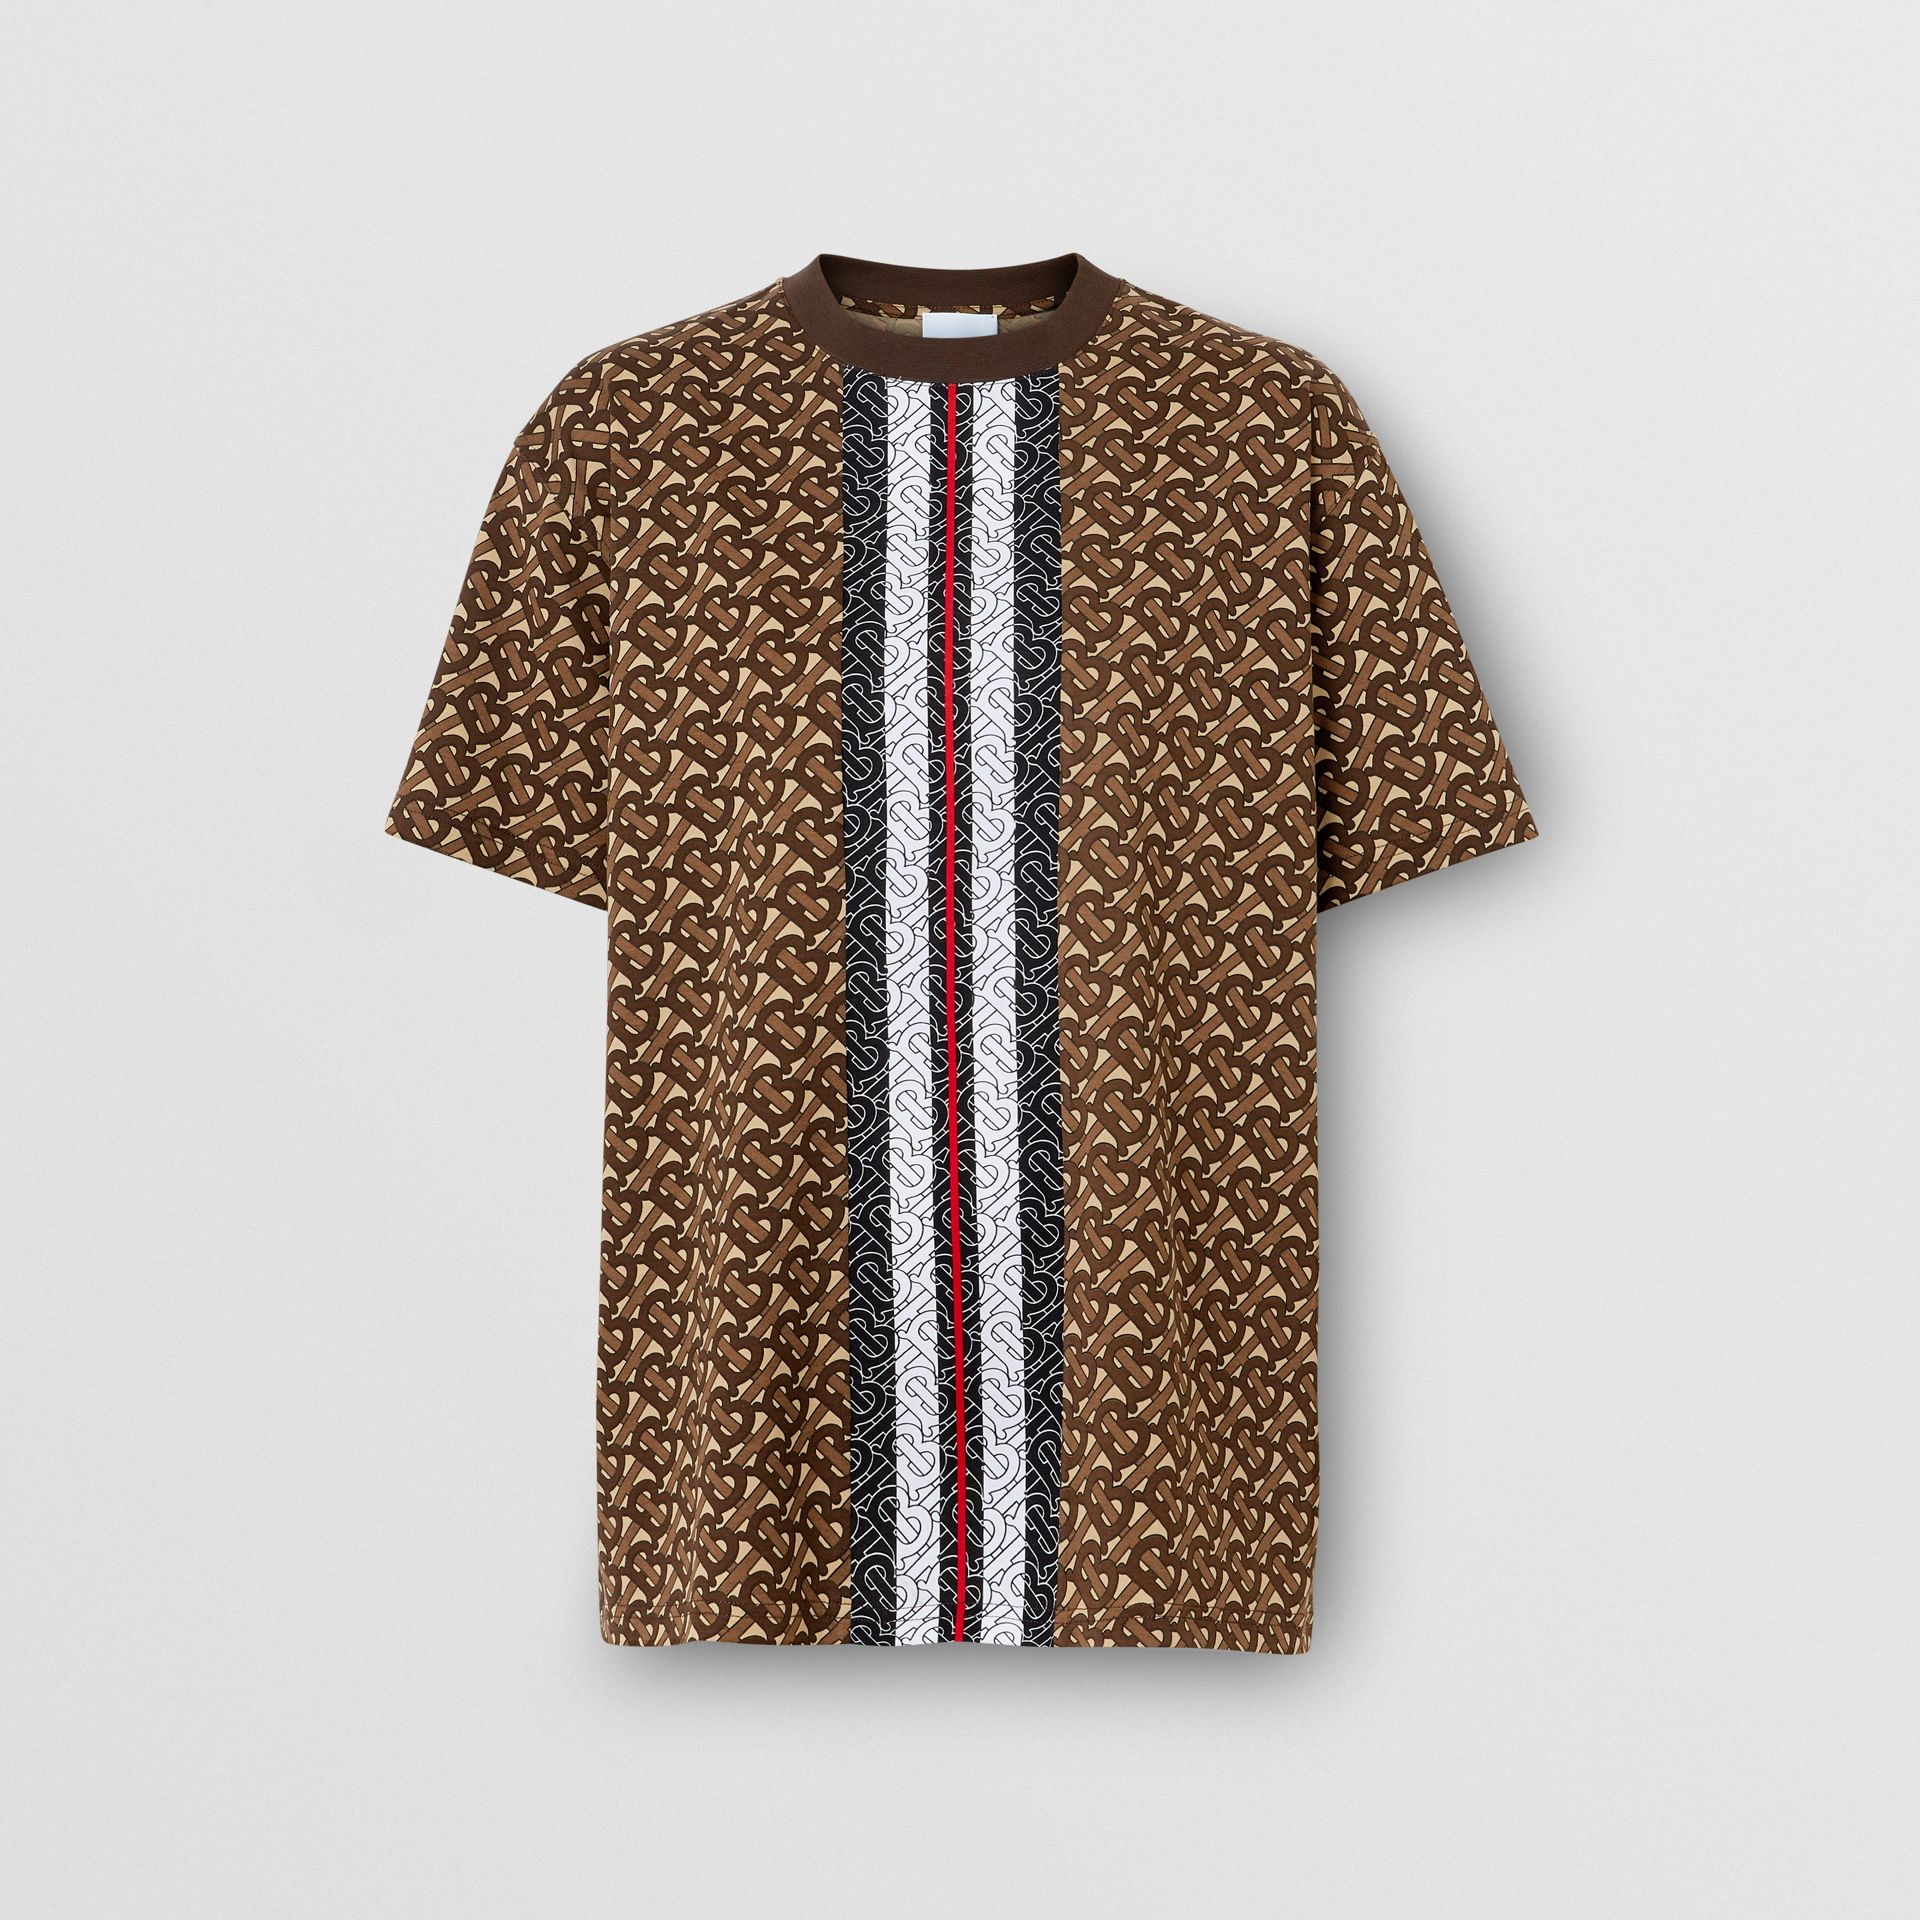 Monogram Stripe Print Cotton Oversized T-shirt in Bridle Brown - Women | Burberry - gallery image 3